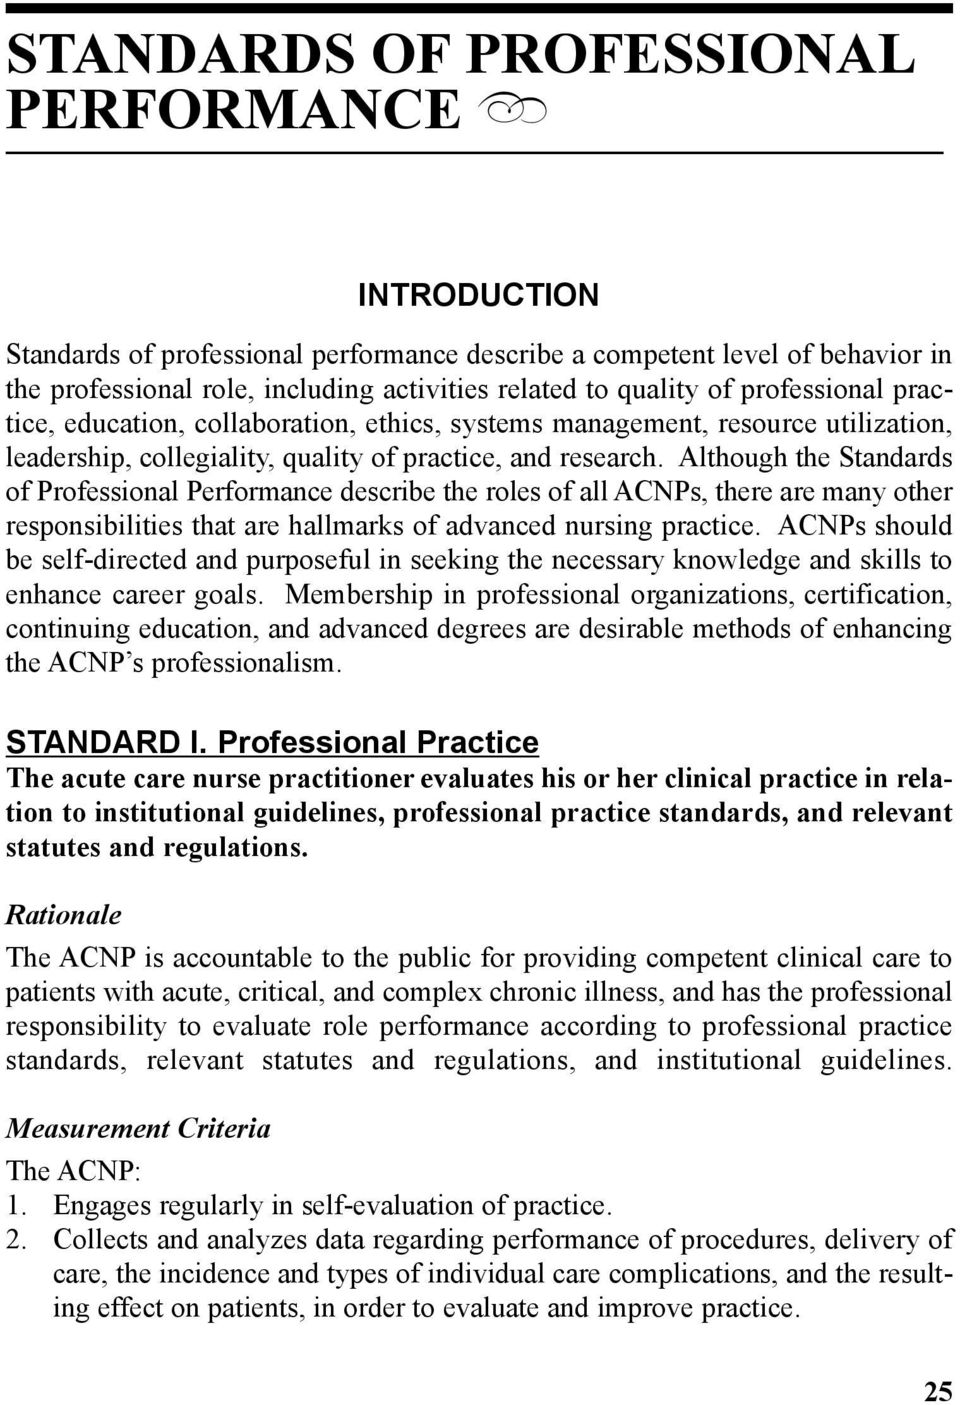 professional standards and institutional ethics in nursing What process would you use to create professional standards and institutional ethics within your healthcare facility (university of mississippi medical center), and what sources of information would you use to set those standards and ethics.